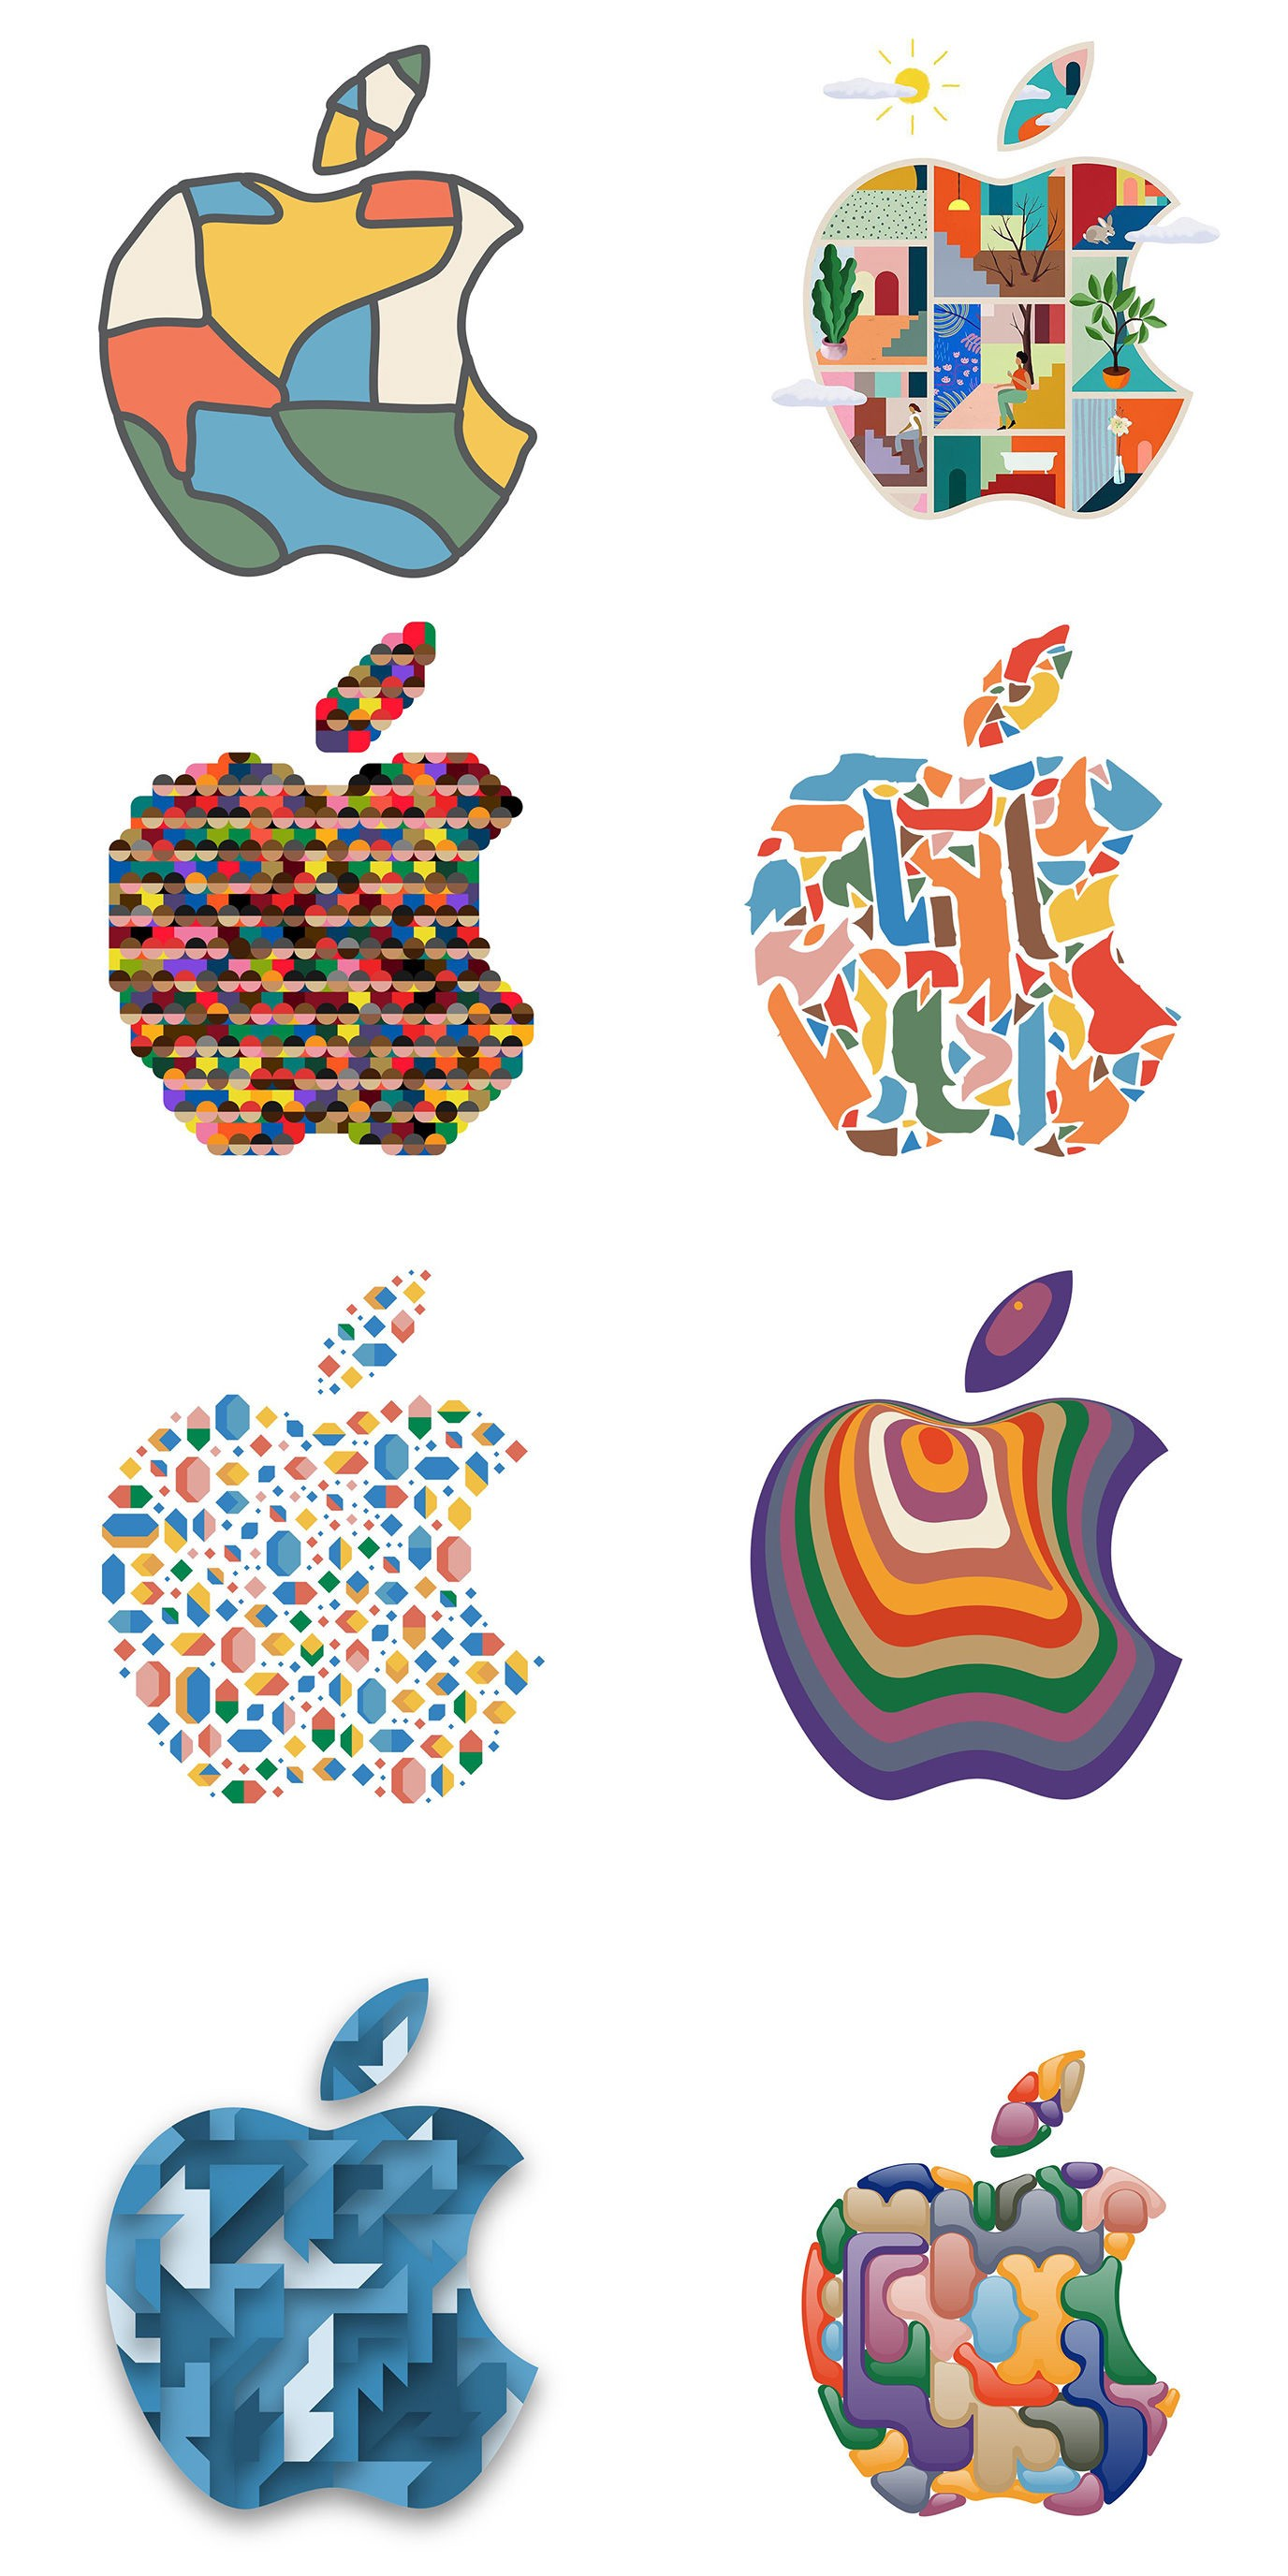 These Artists Reimagined The Apple Logo For The New iPad Pro